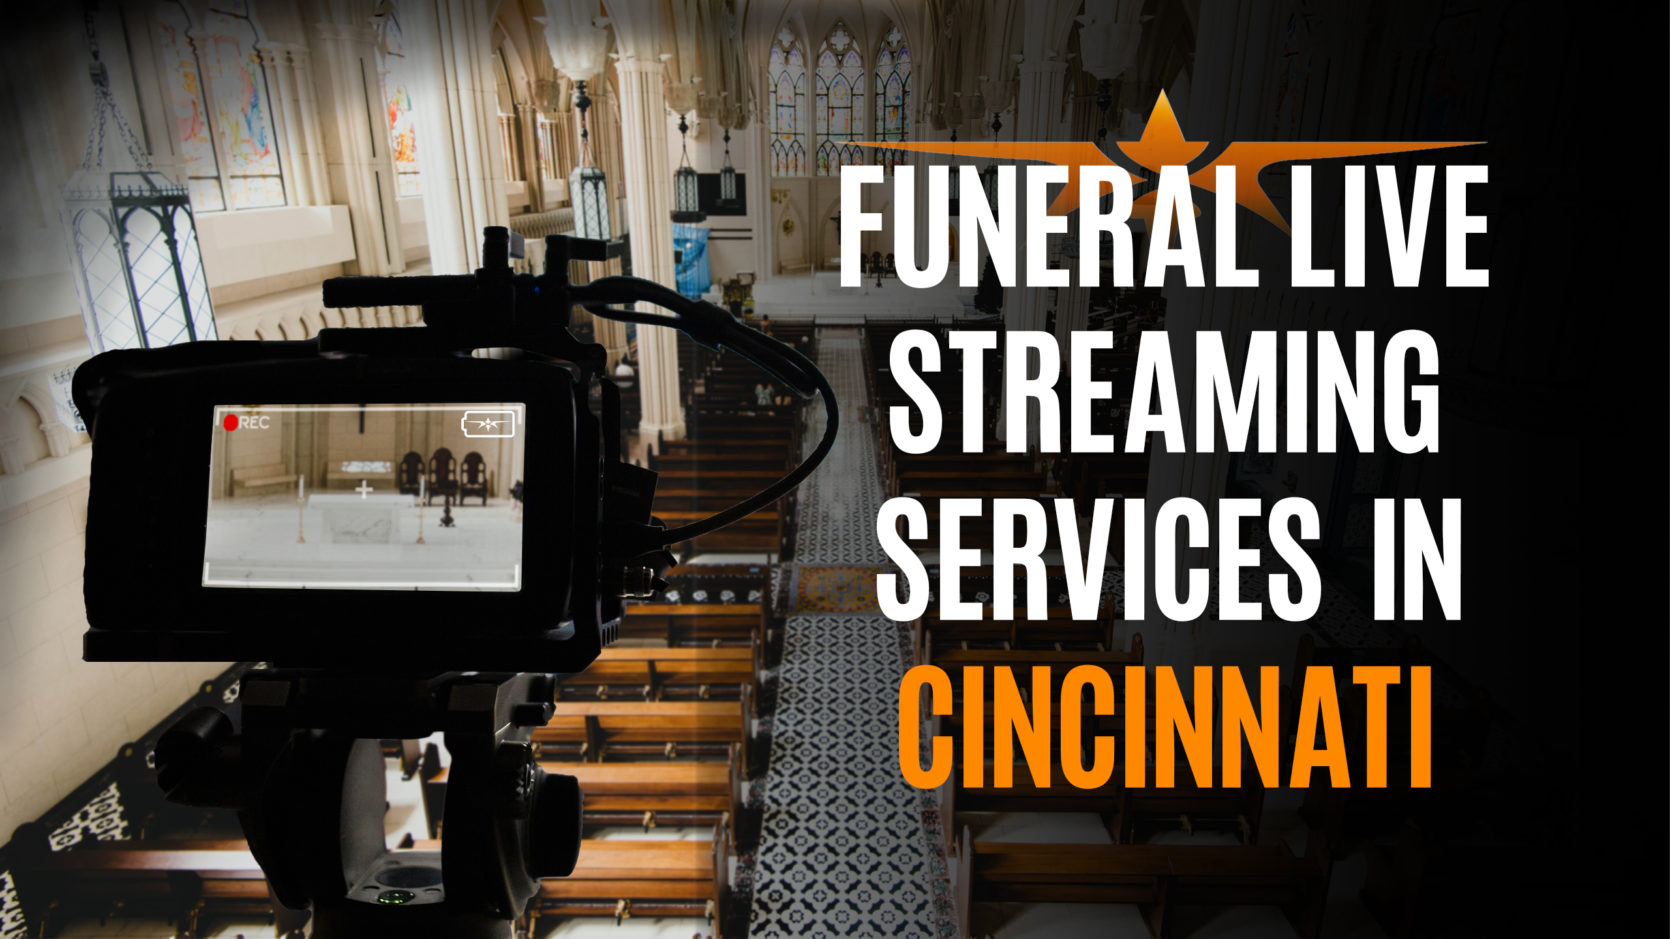 Funeral Live Streaming Services in Cincinnati